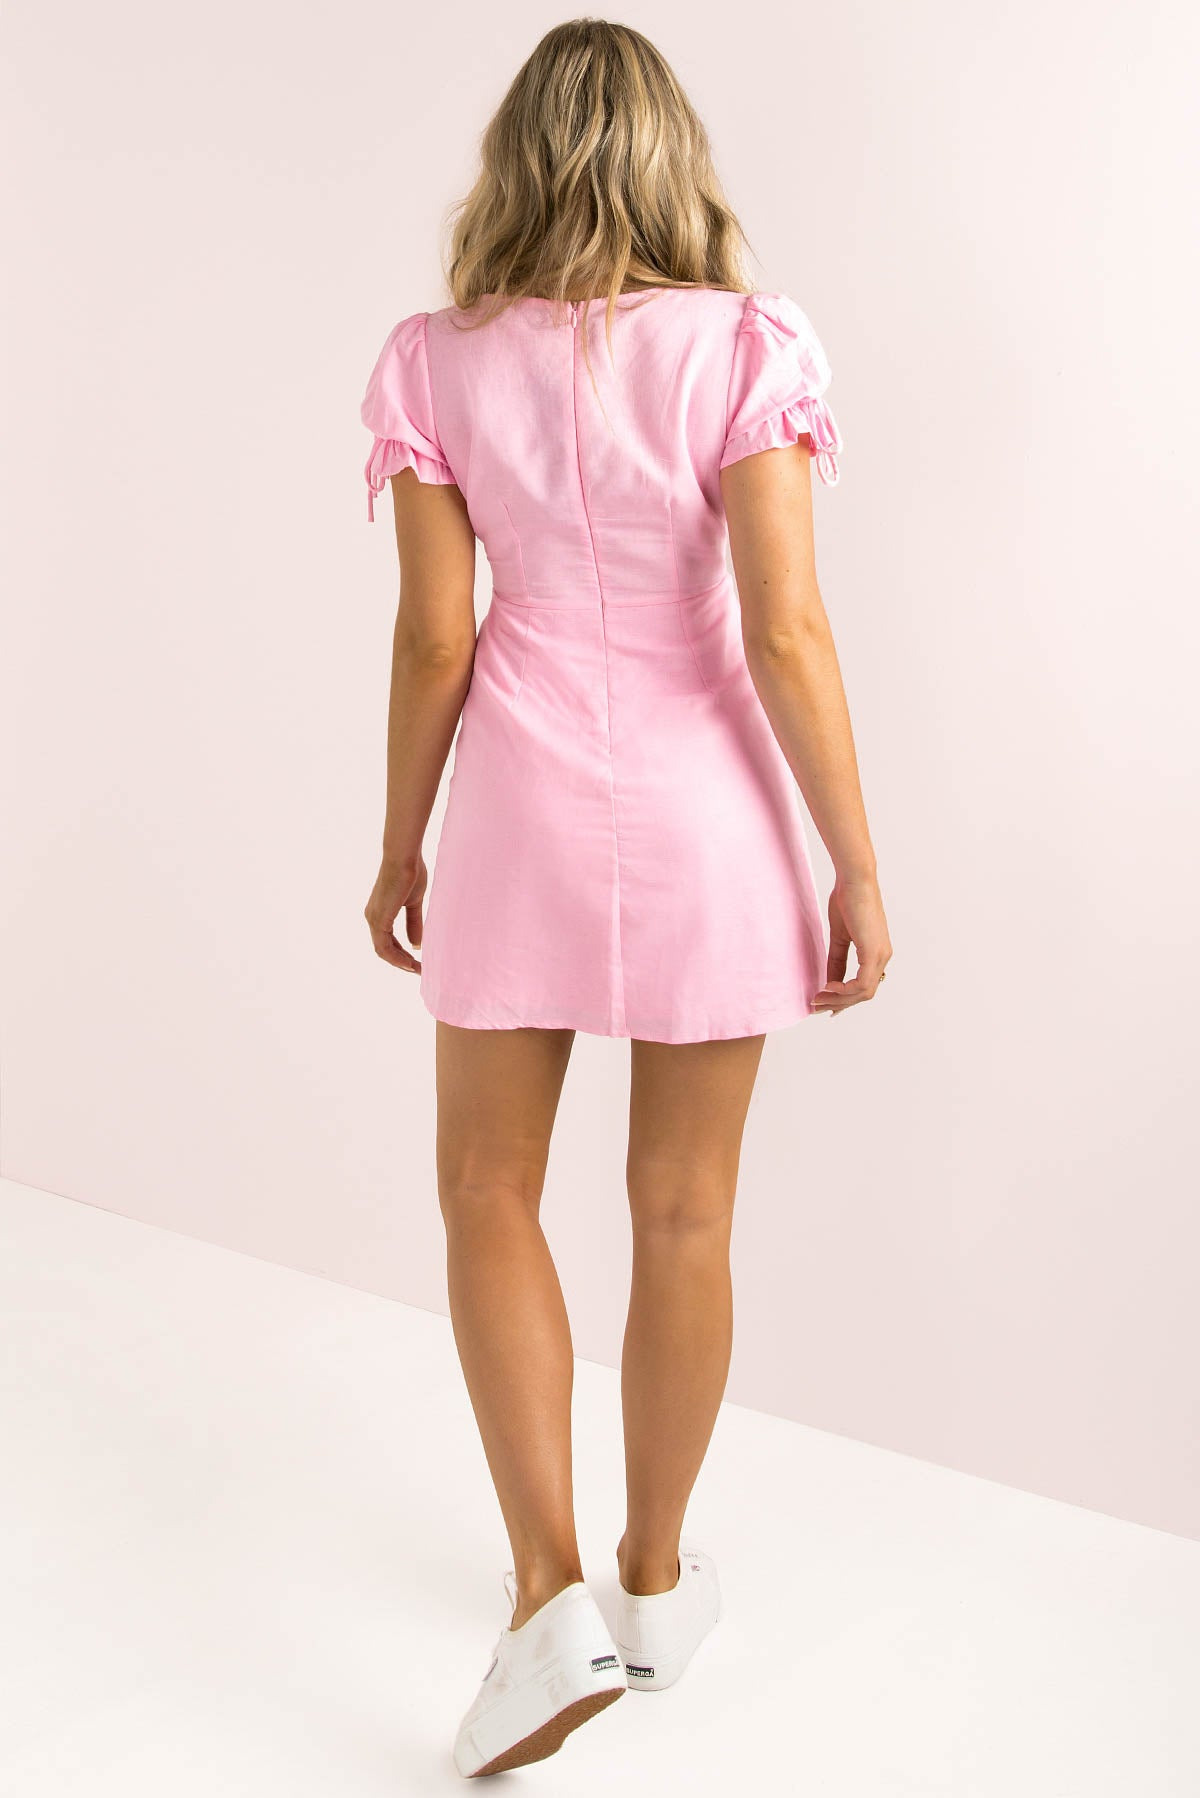 Amalfi Dress / Pink